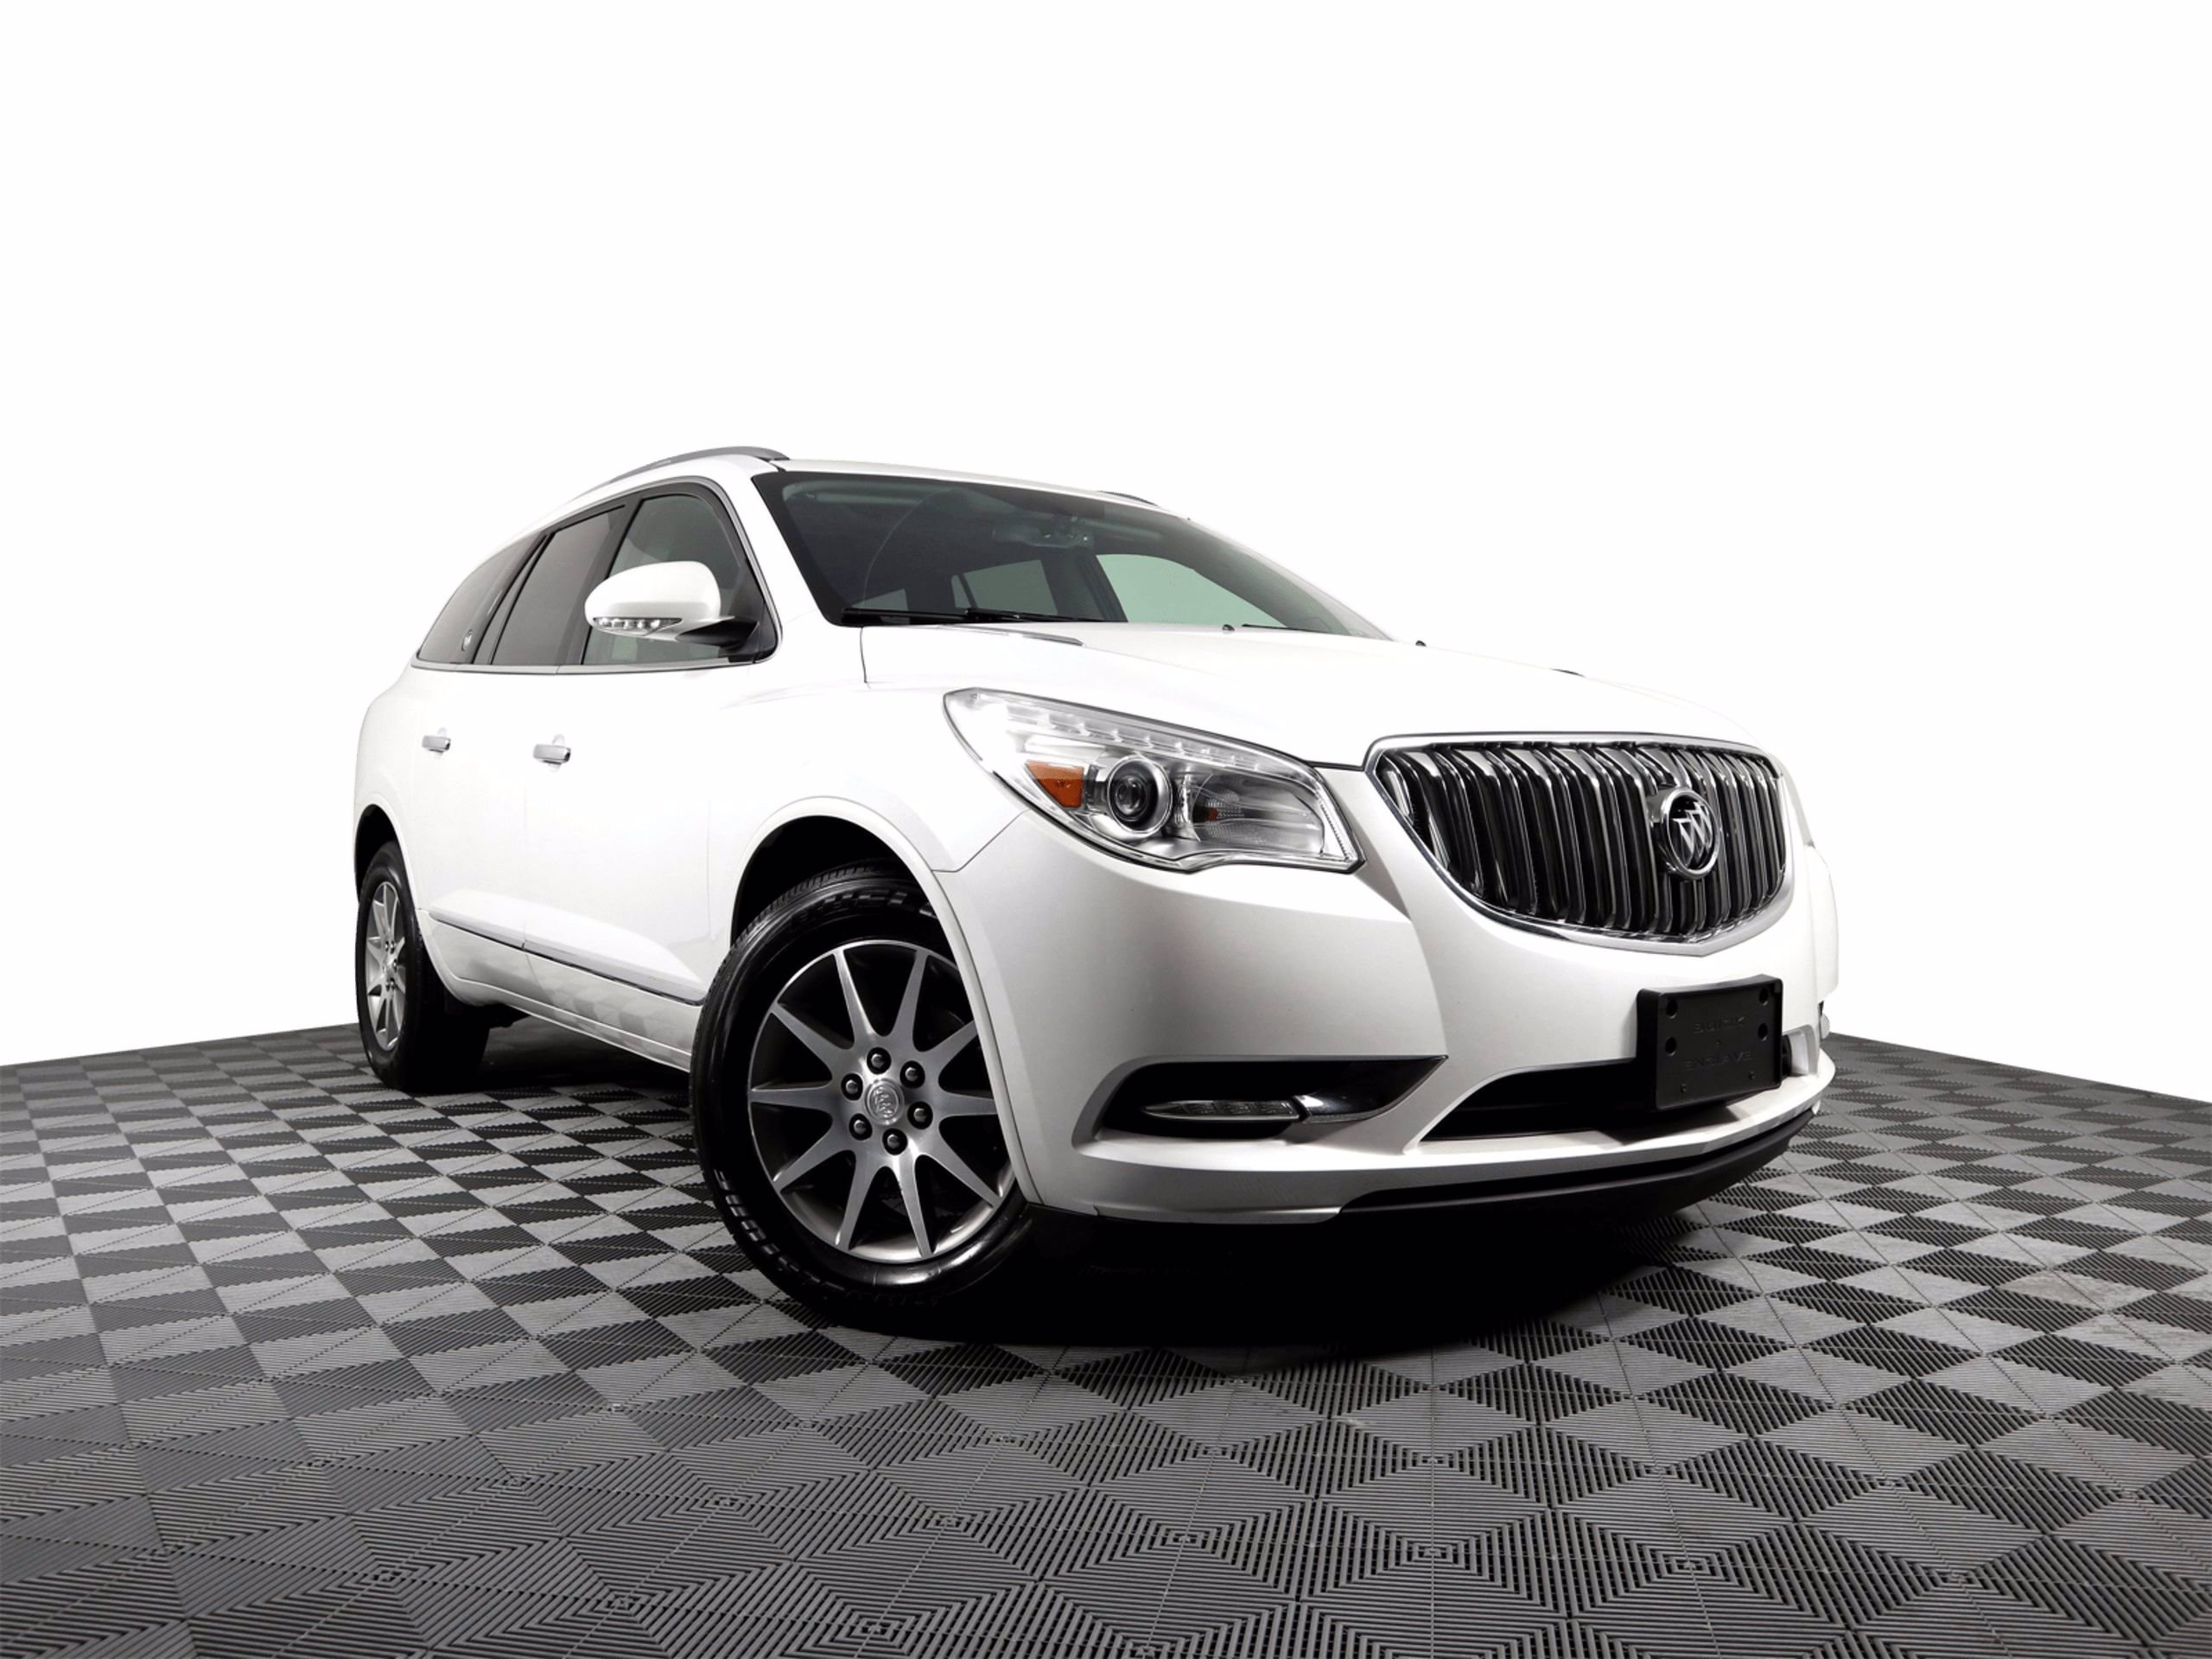 2016 Buick Enclave Leather Awd 2022 Buick Enclave Manual, Maintenance Schedule, Mileage